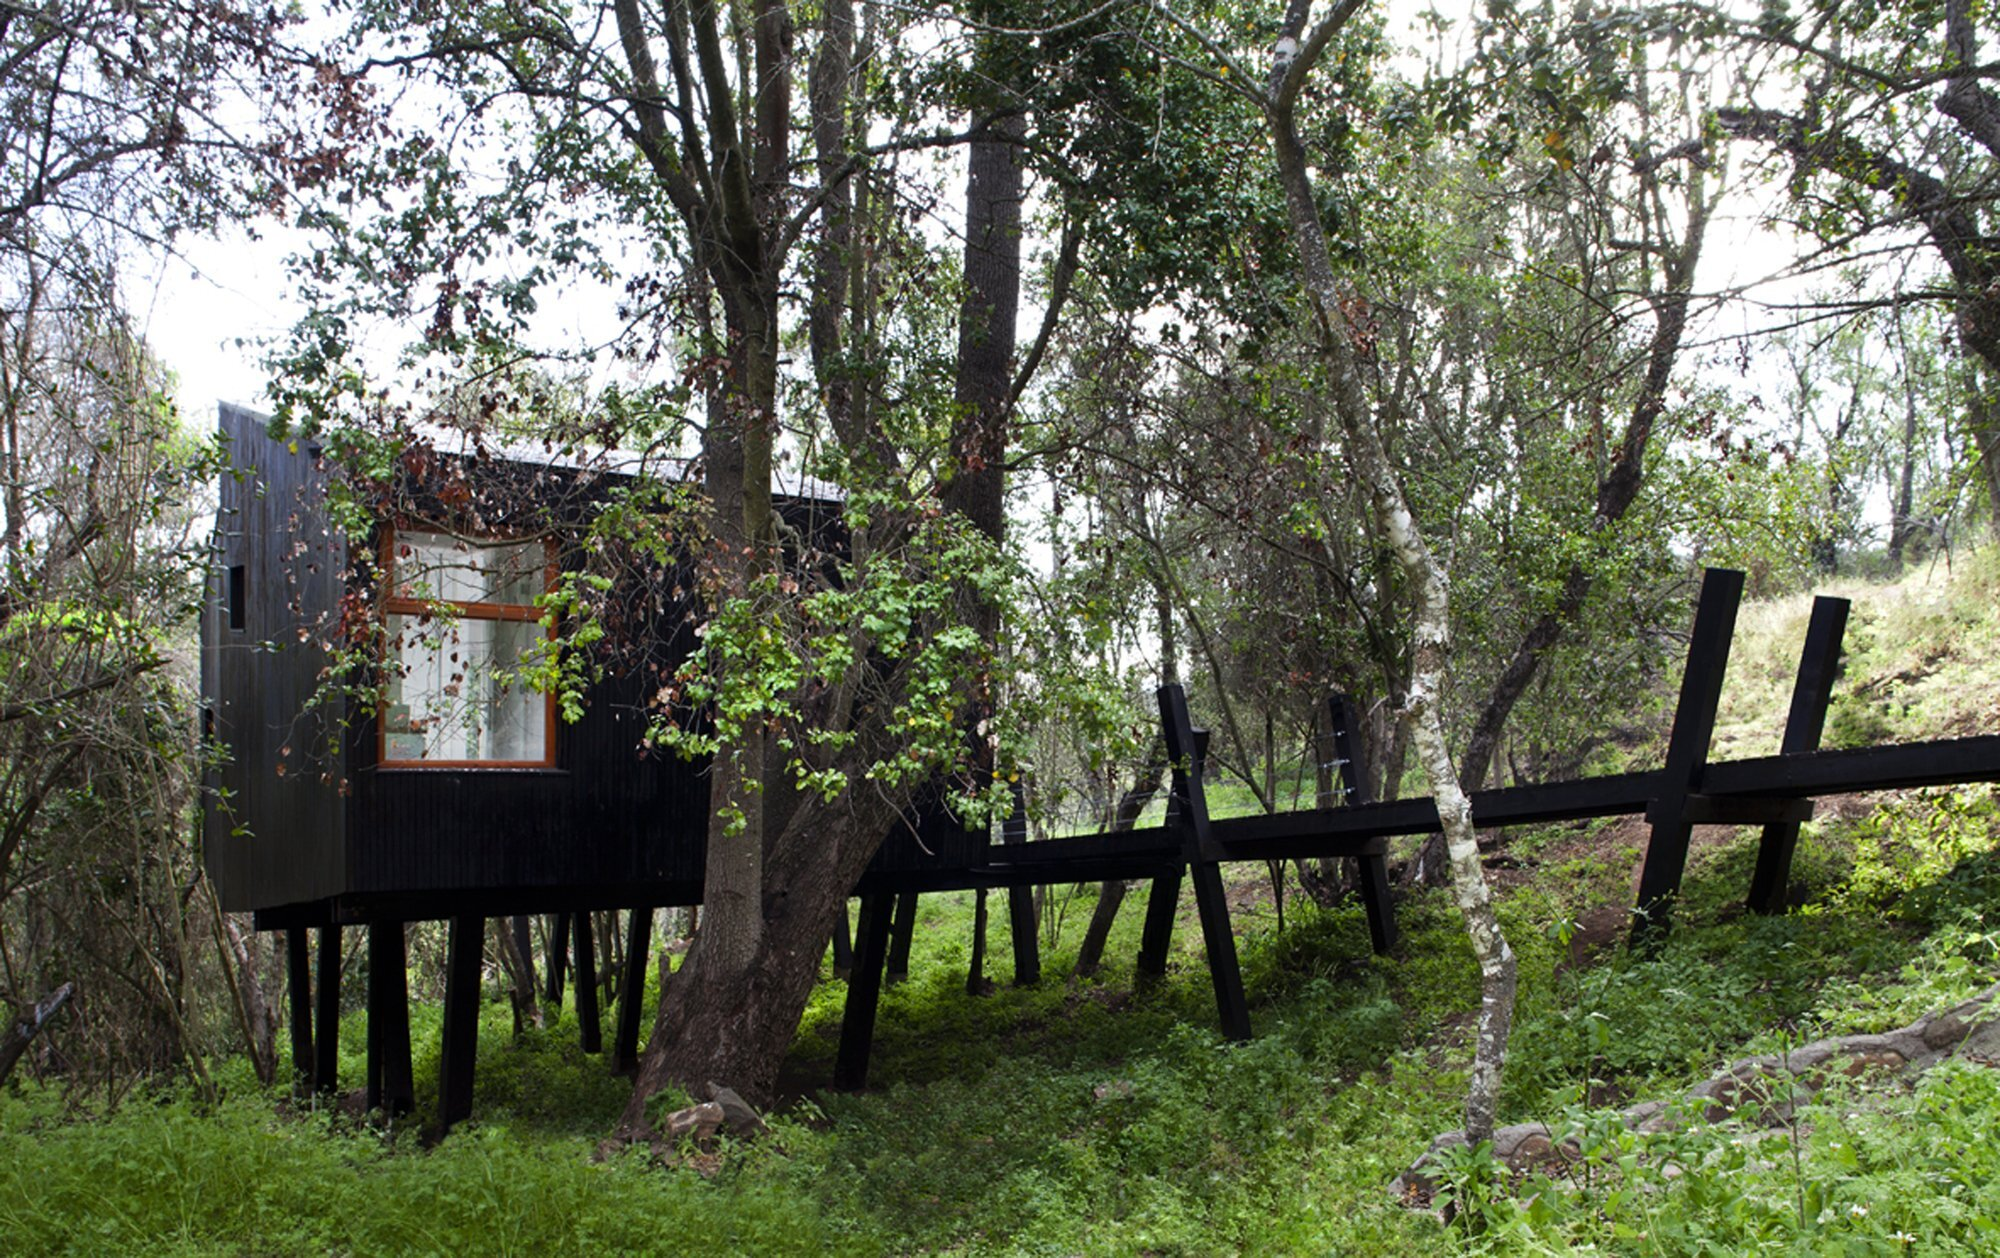 Quebrada House - UNarquitectura - Small House in Chile - Humble Homes